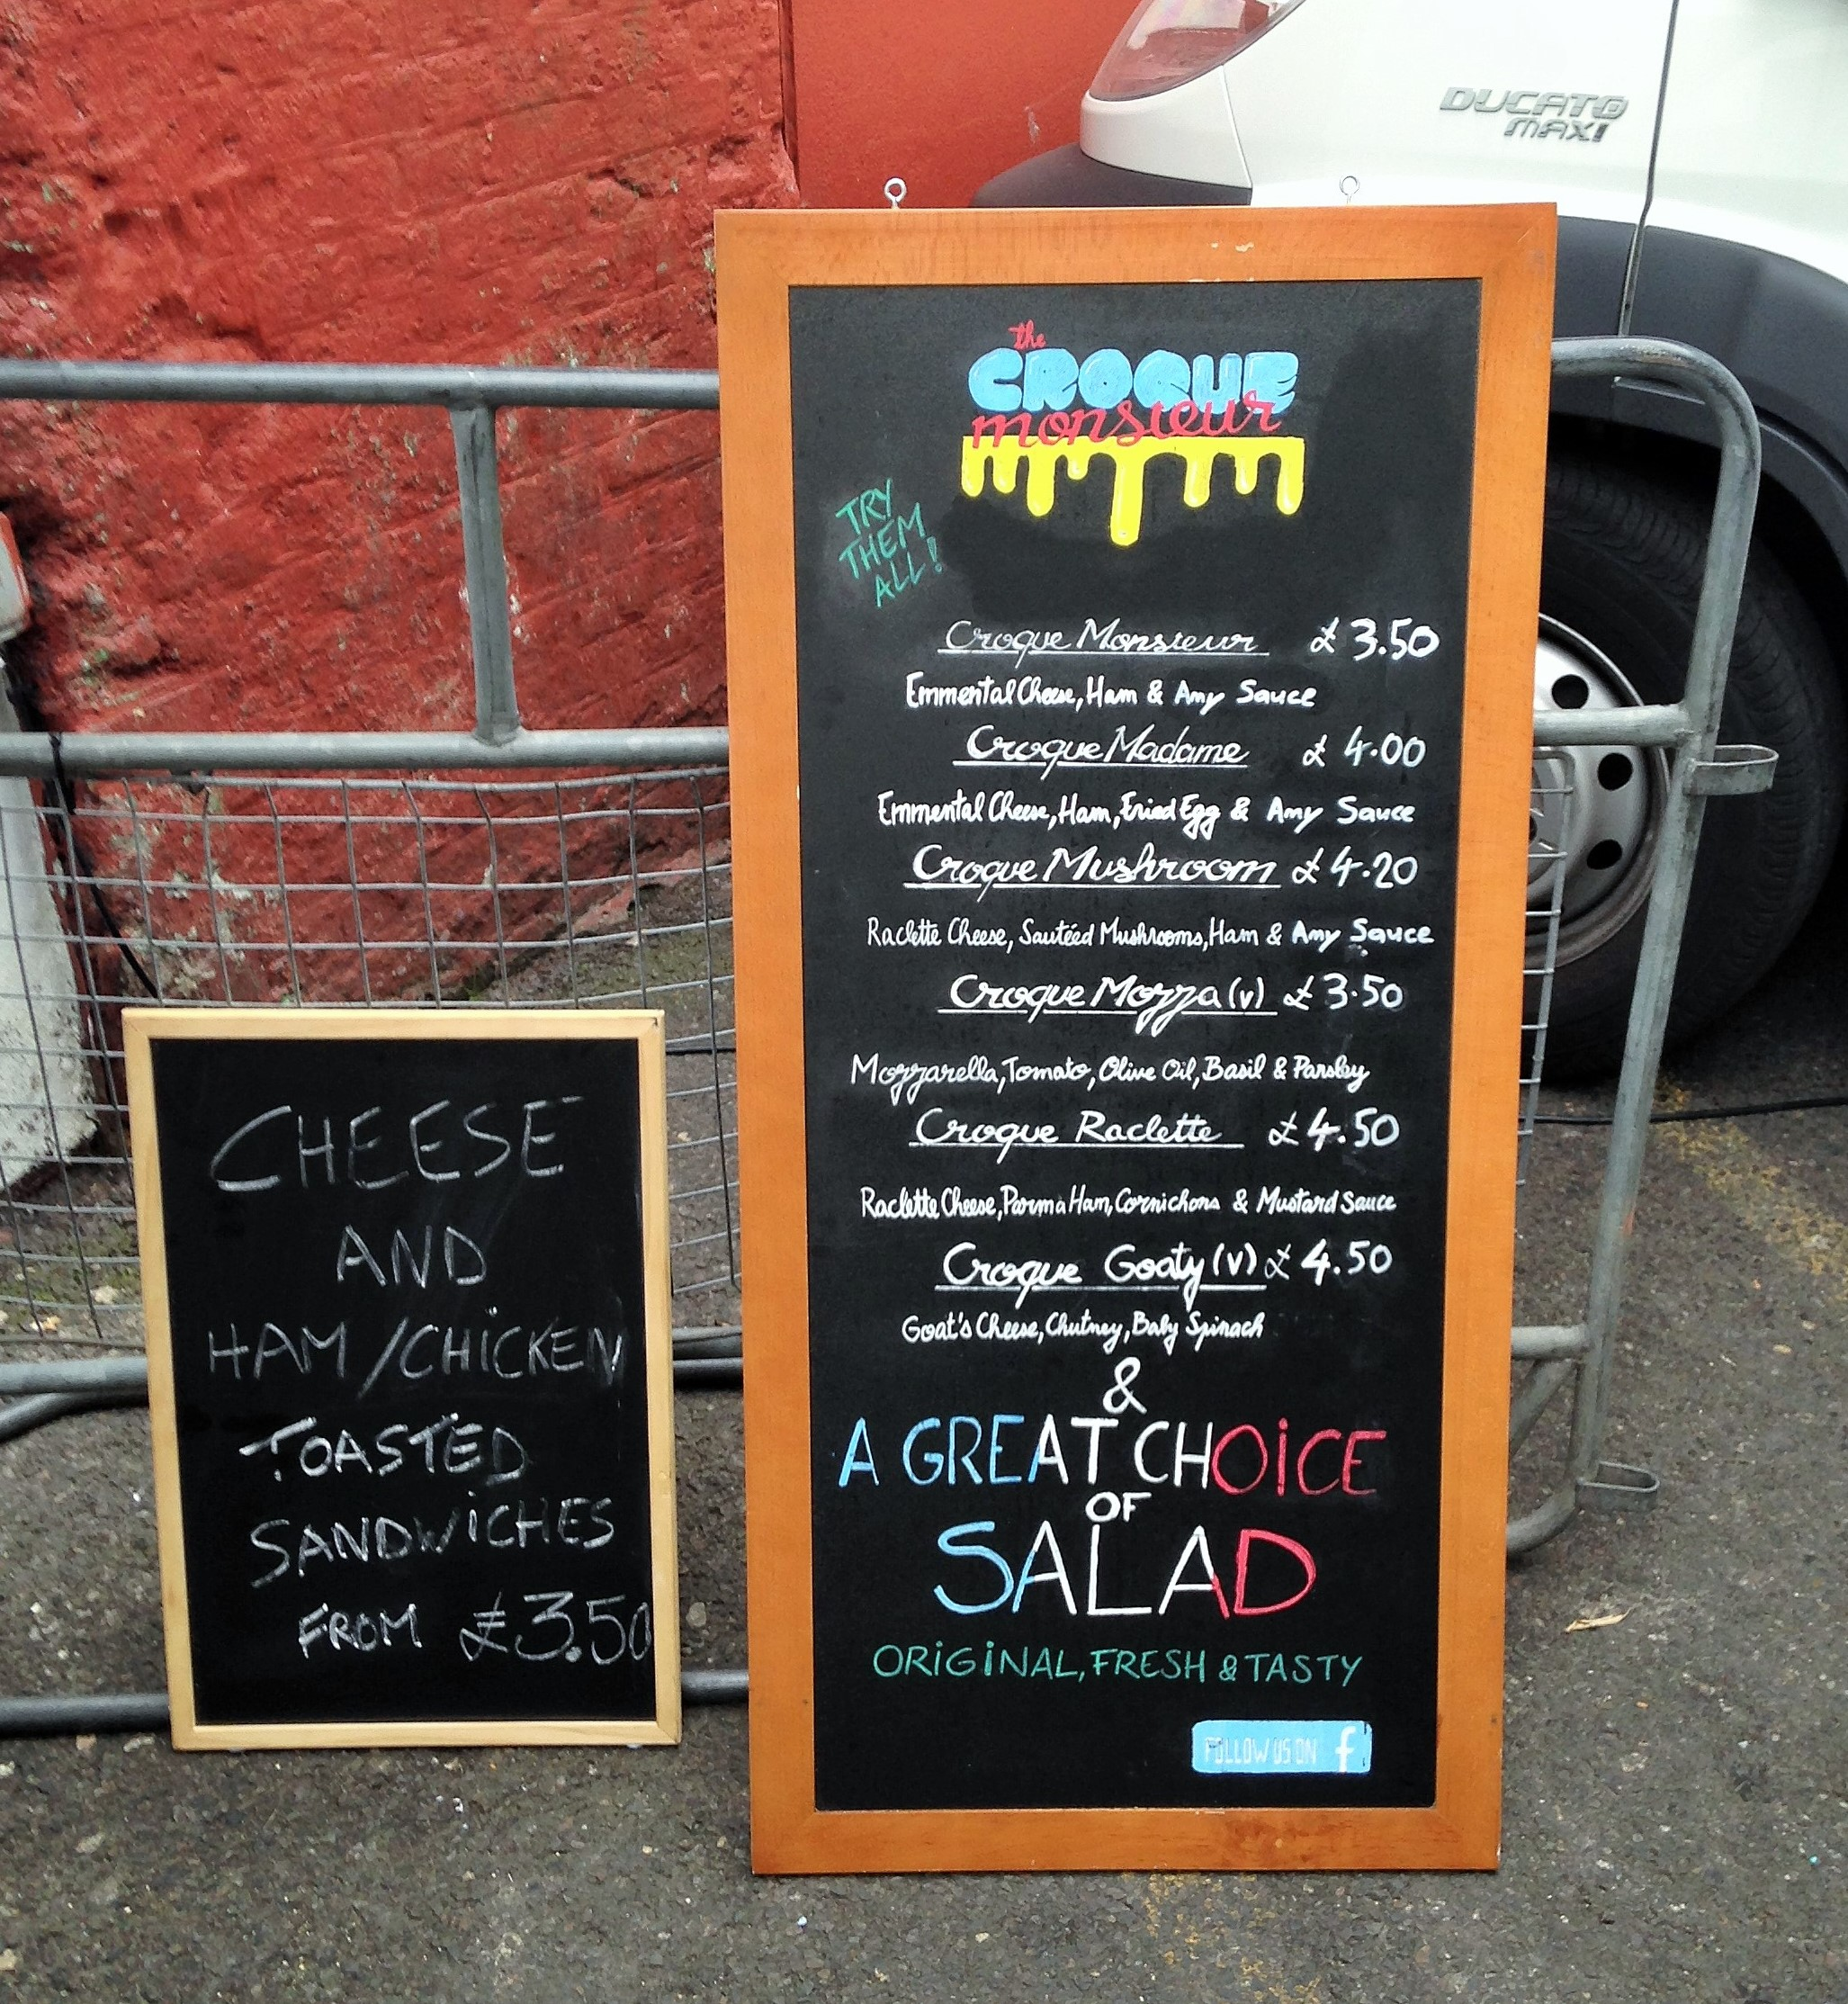 Croque Monsieur menu at Vauxhall Street Food Market - kenningtonrunoff.com